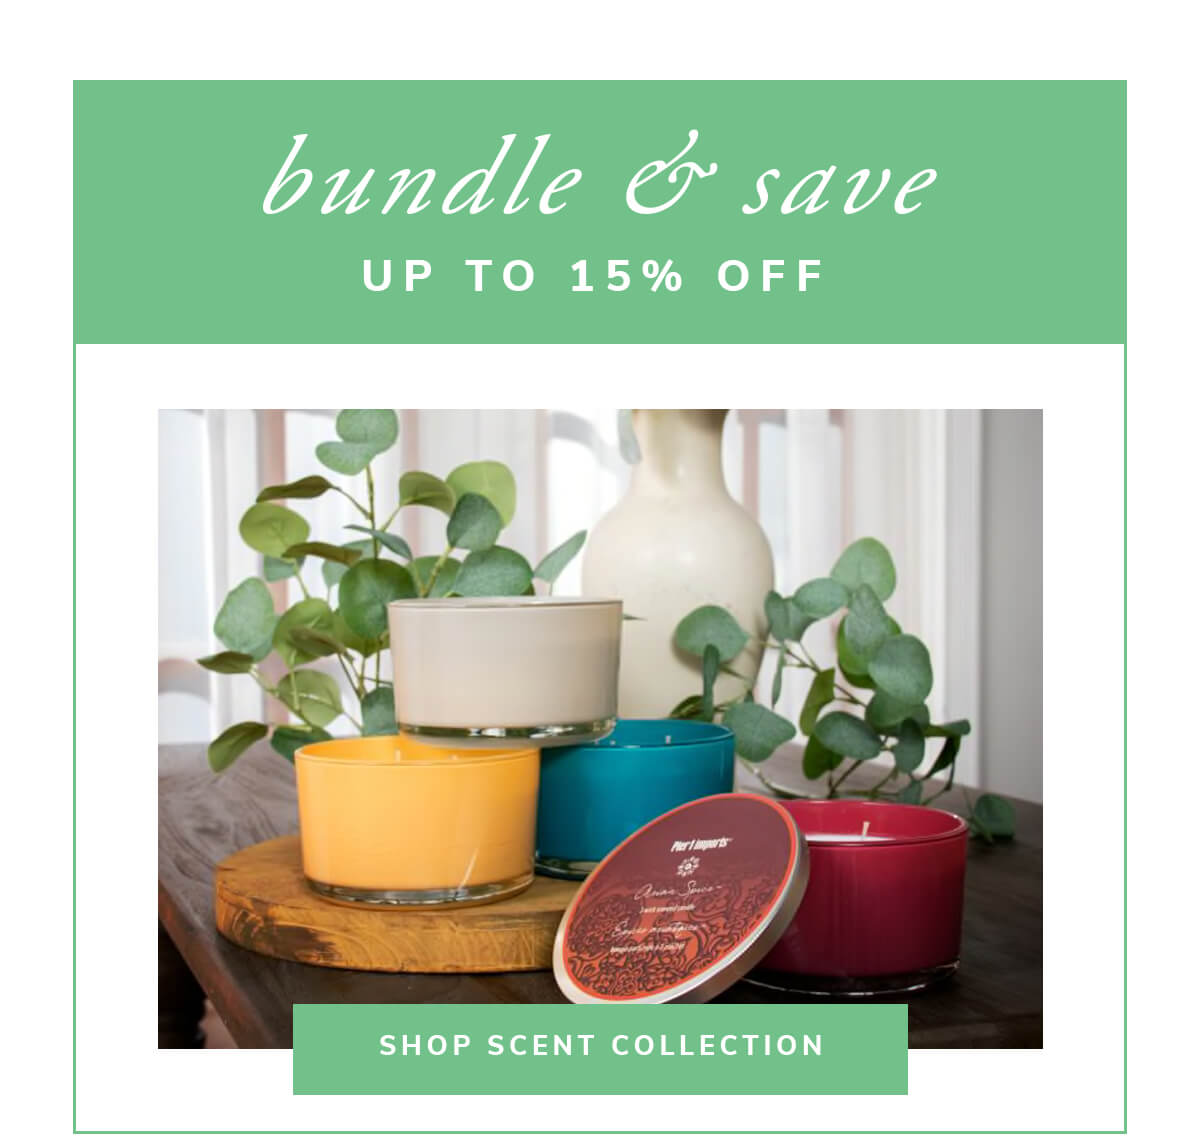 Bundle and save up to 15% off. | SHOP SCENT COLLECTION